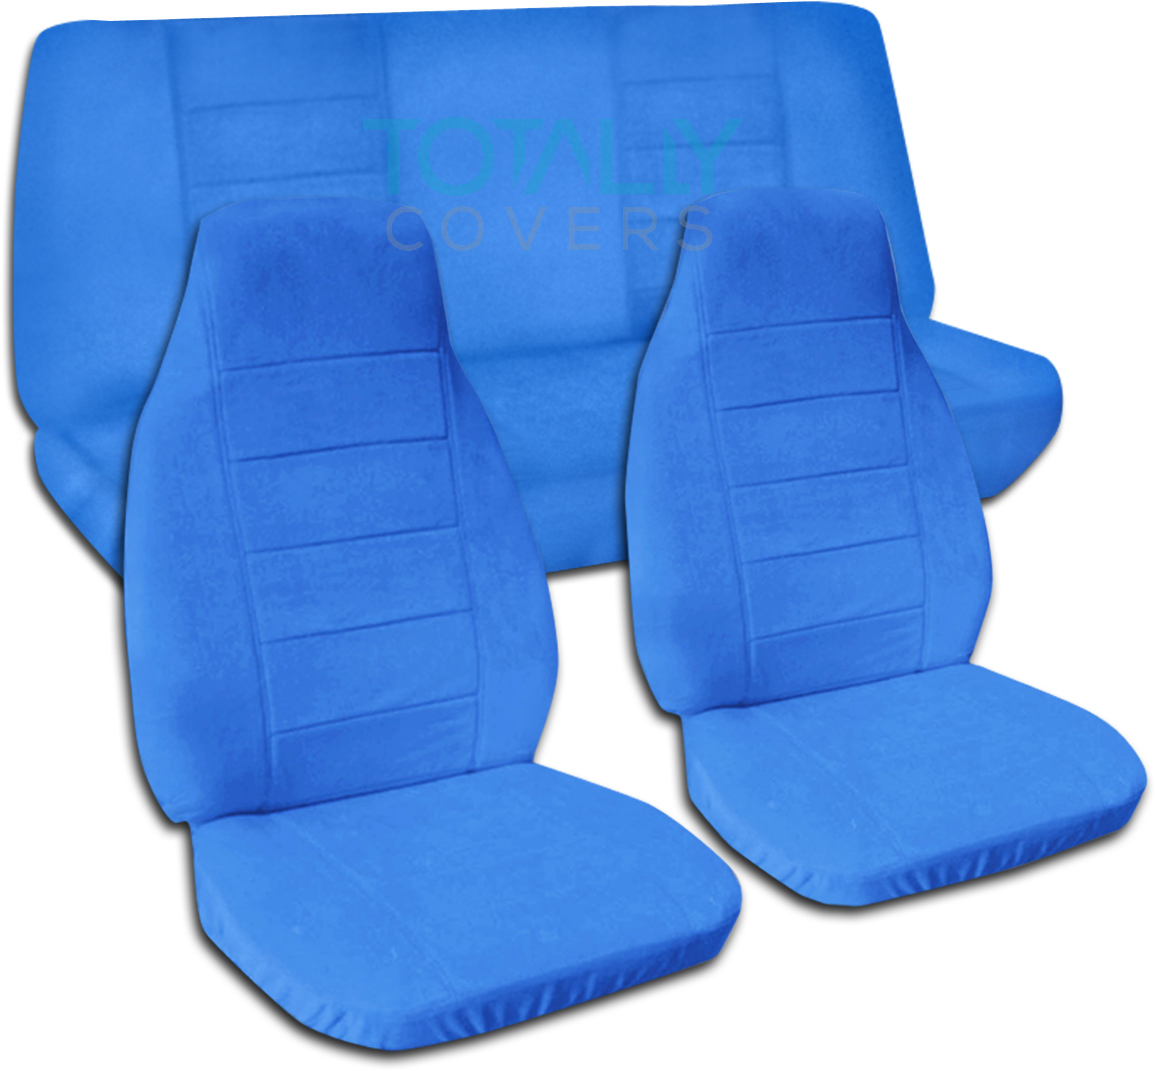 Semi Custom Seat Covers For Cars